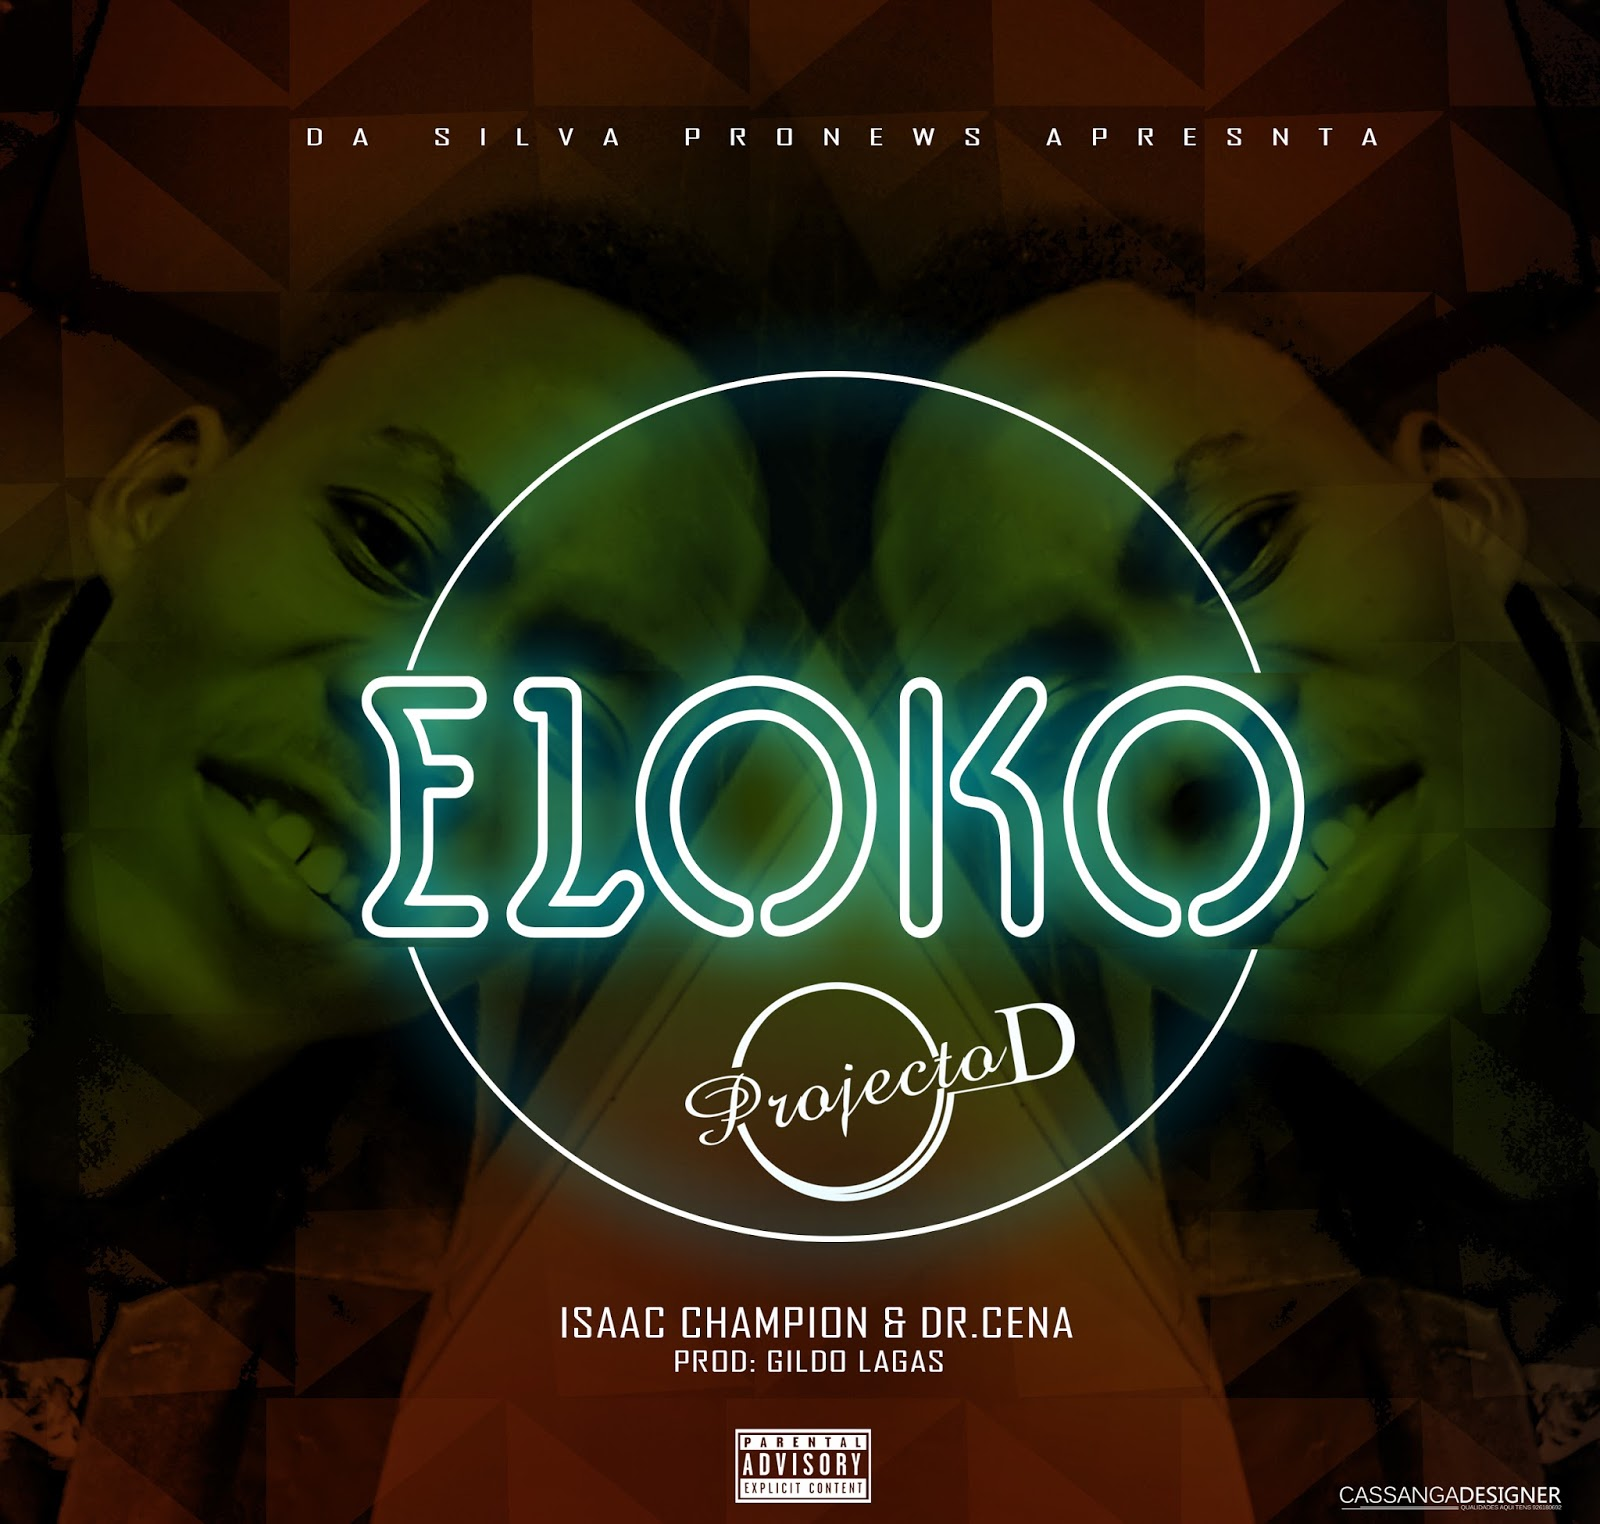 Da Silva Pro Feat. Issack Champiom - EloKo (Afro House) [Download]